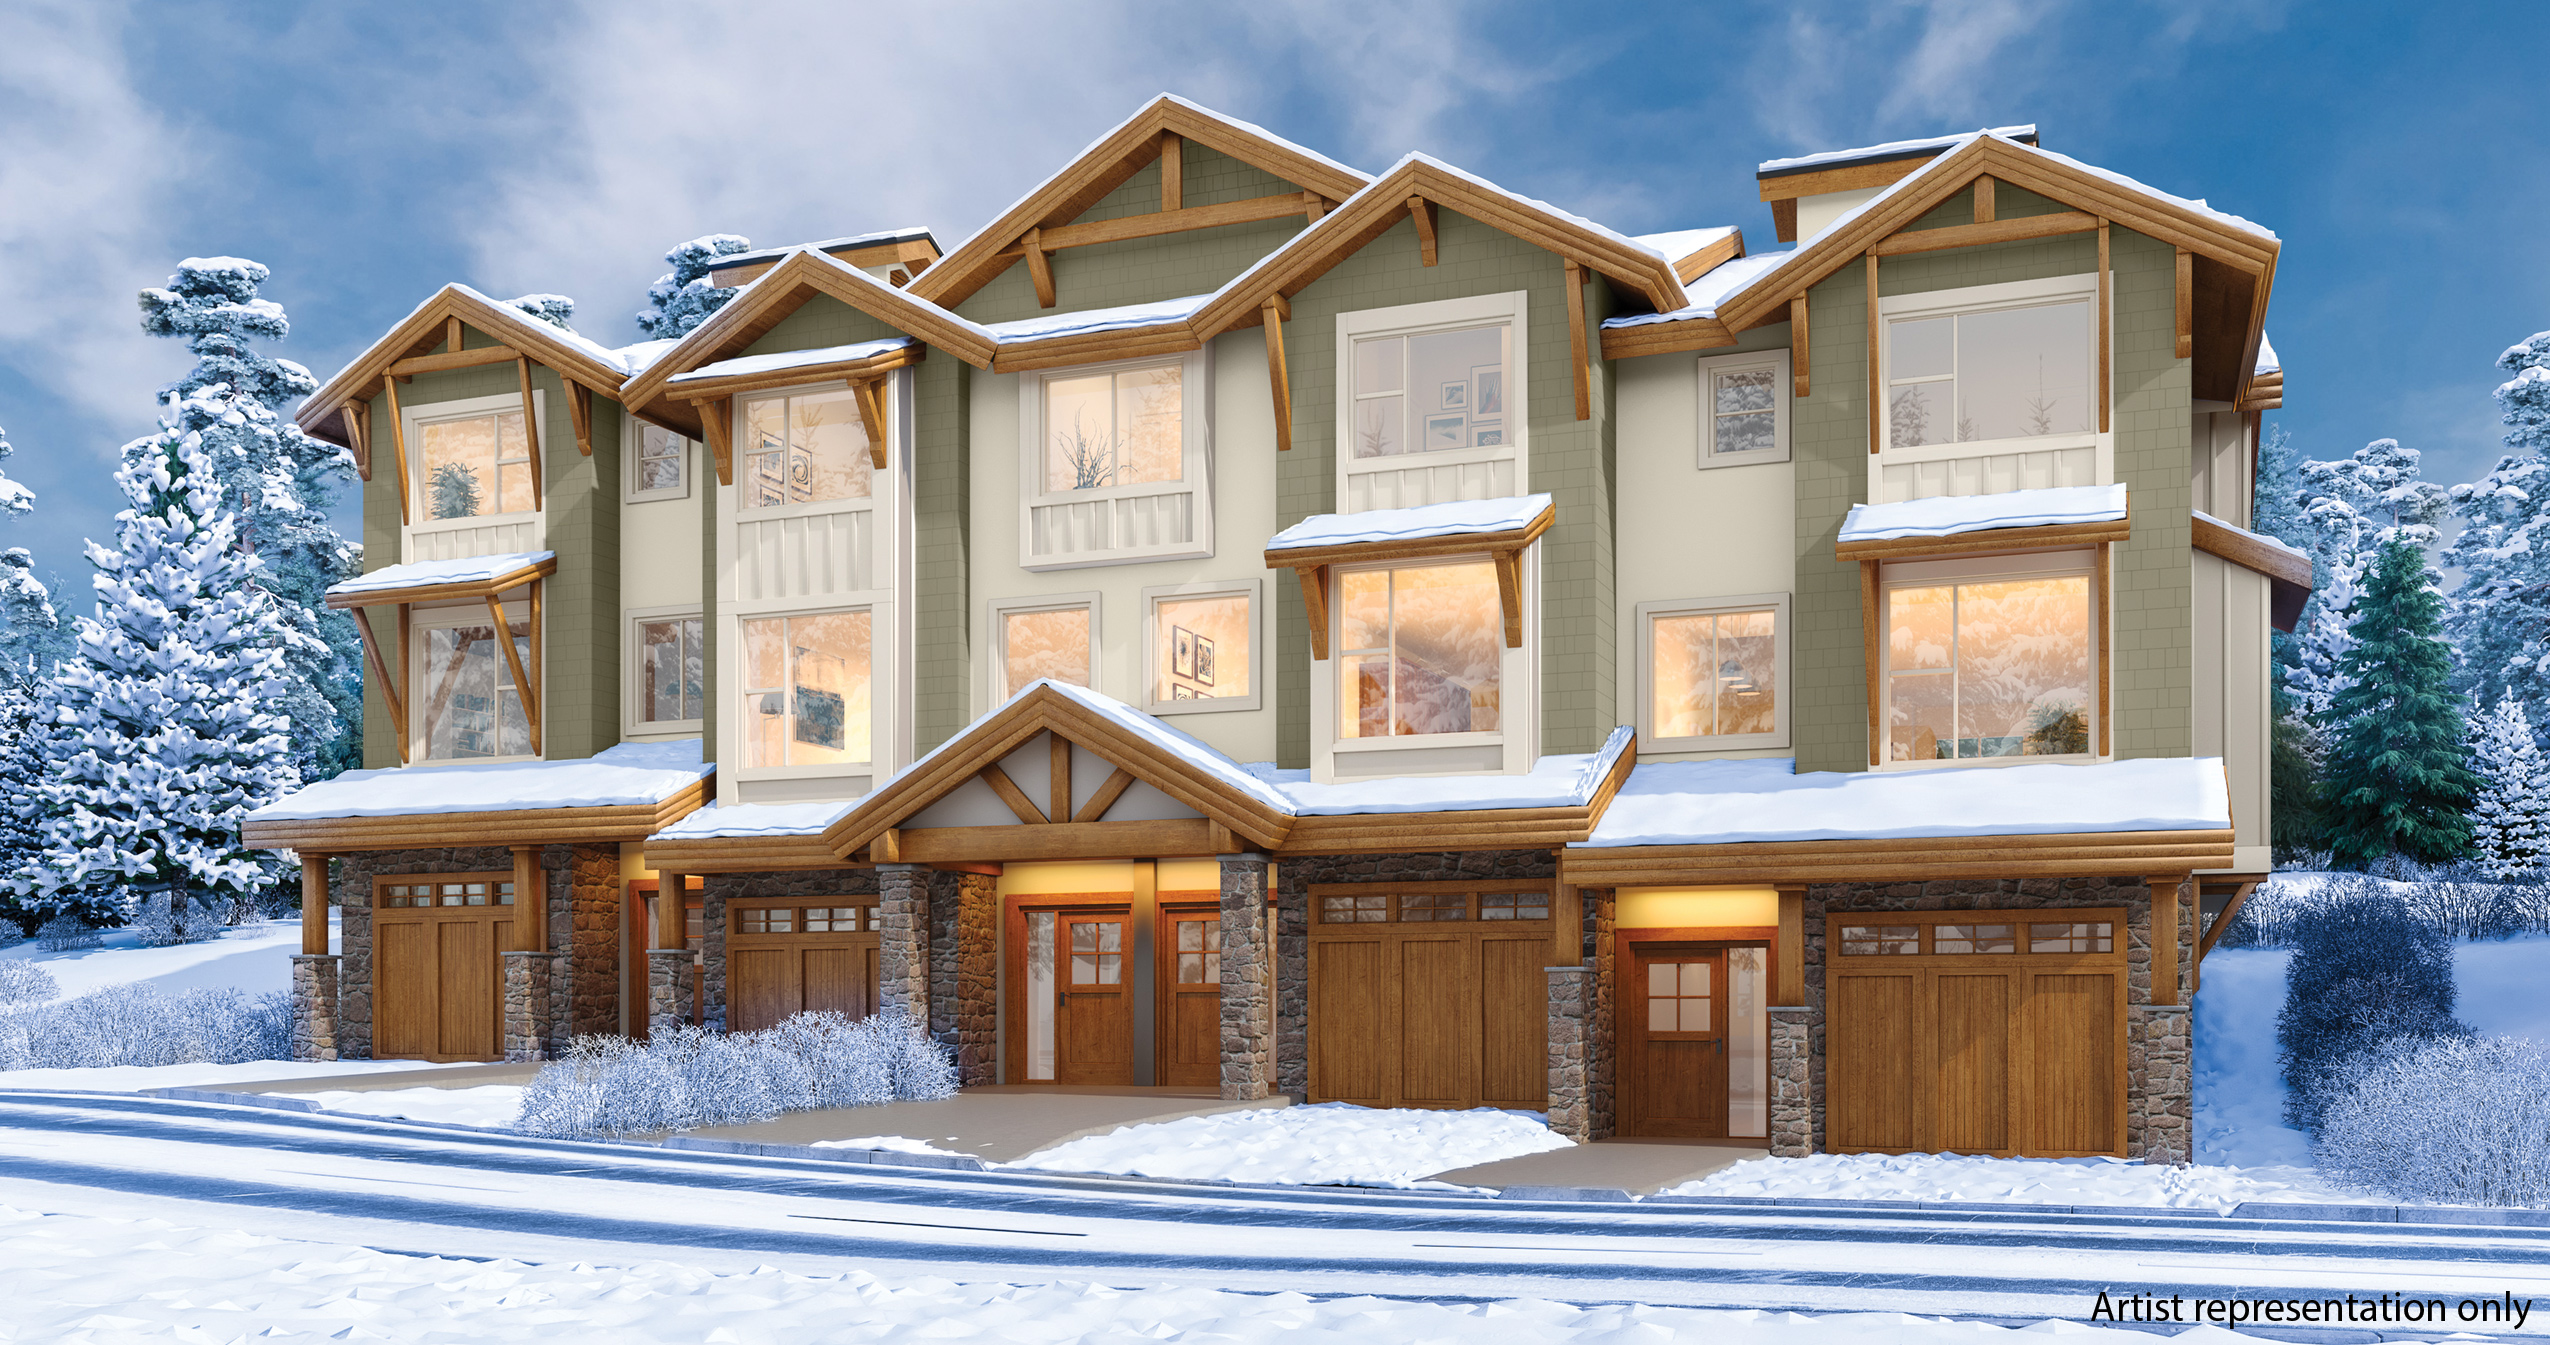 Altitude - Sun Peaks' newest real estate investment opportunity